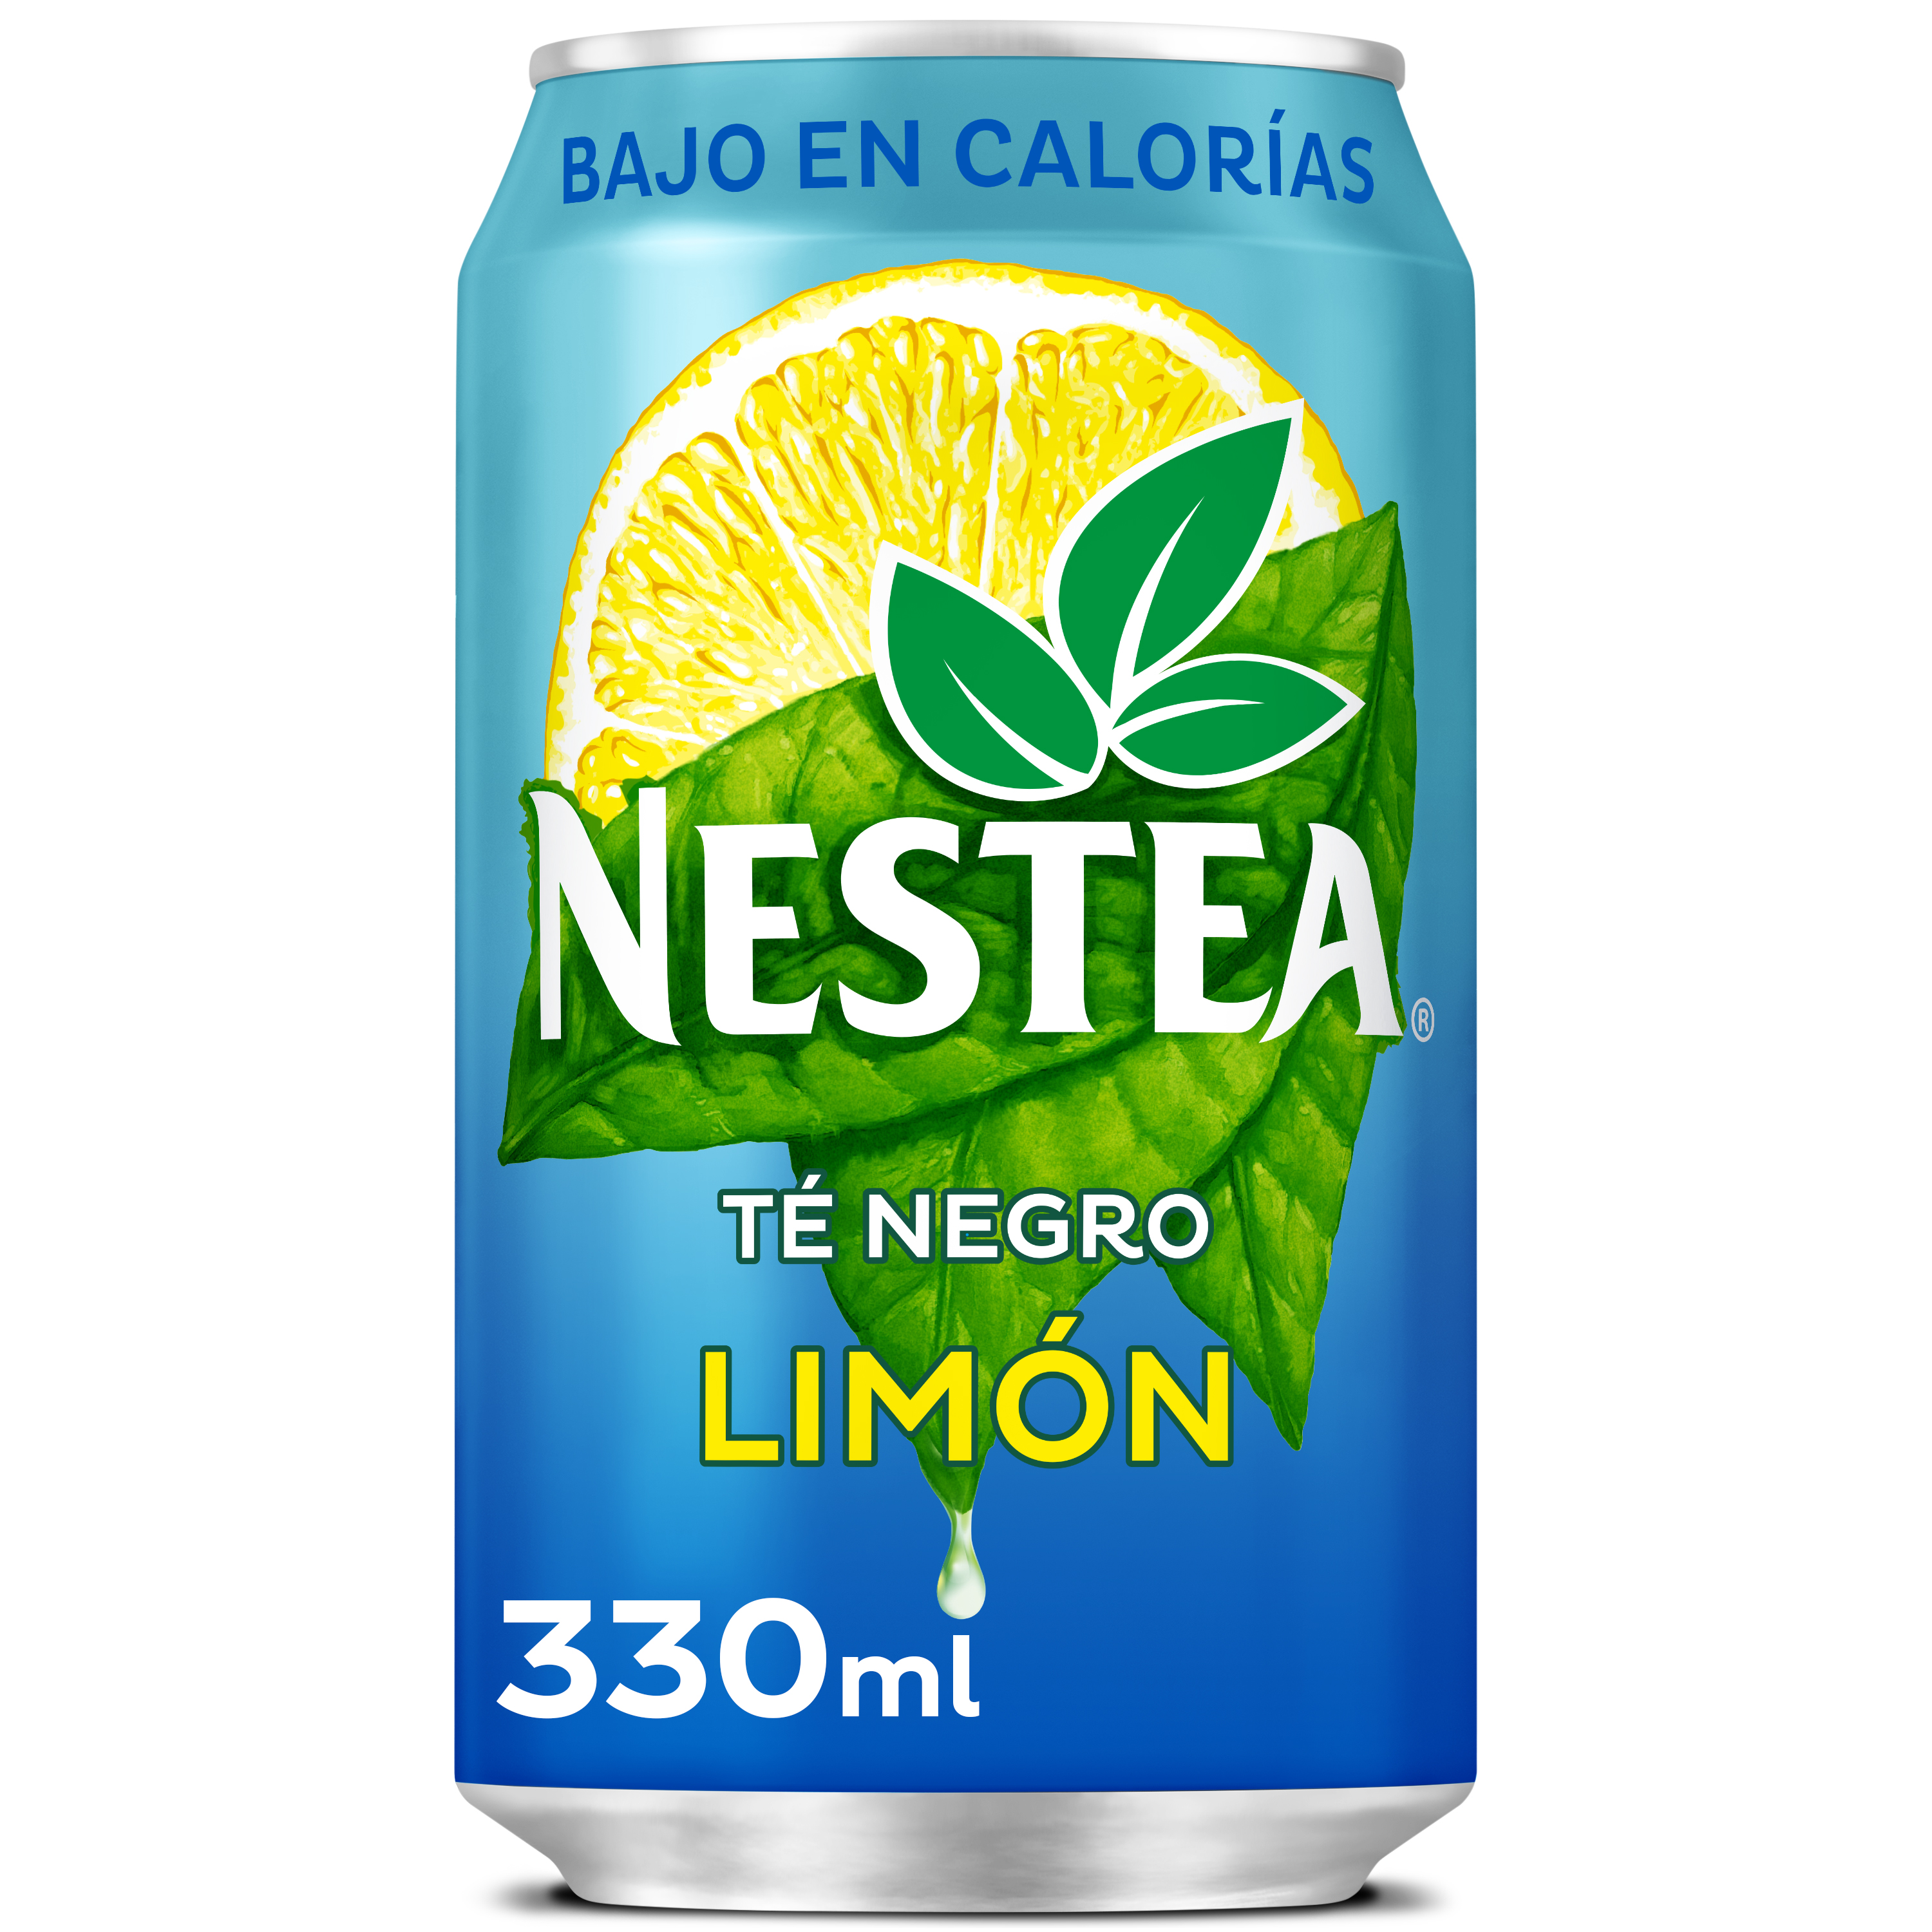 Nestea refresco te al limon de 33cl.